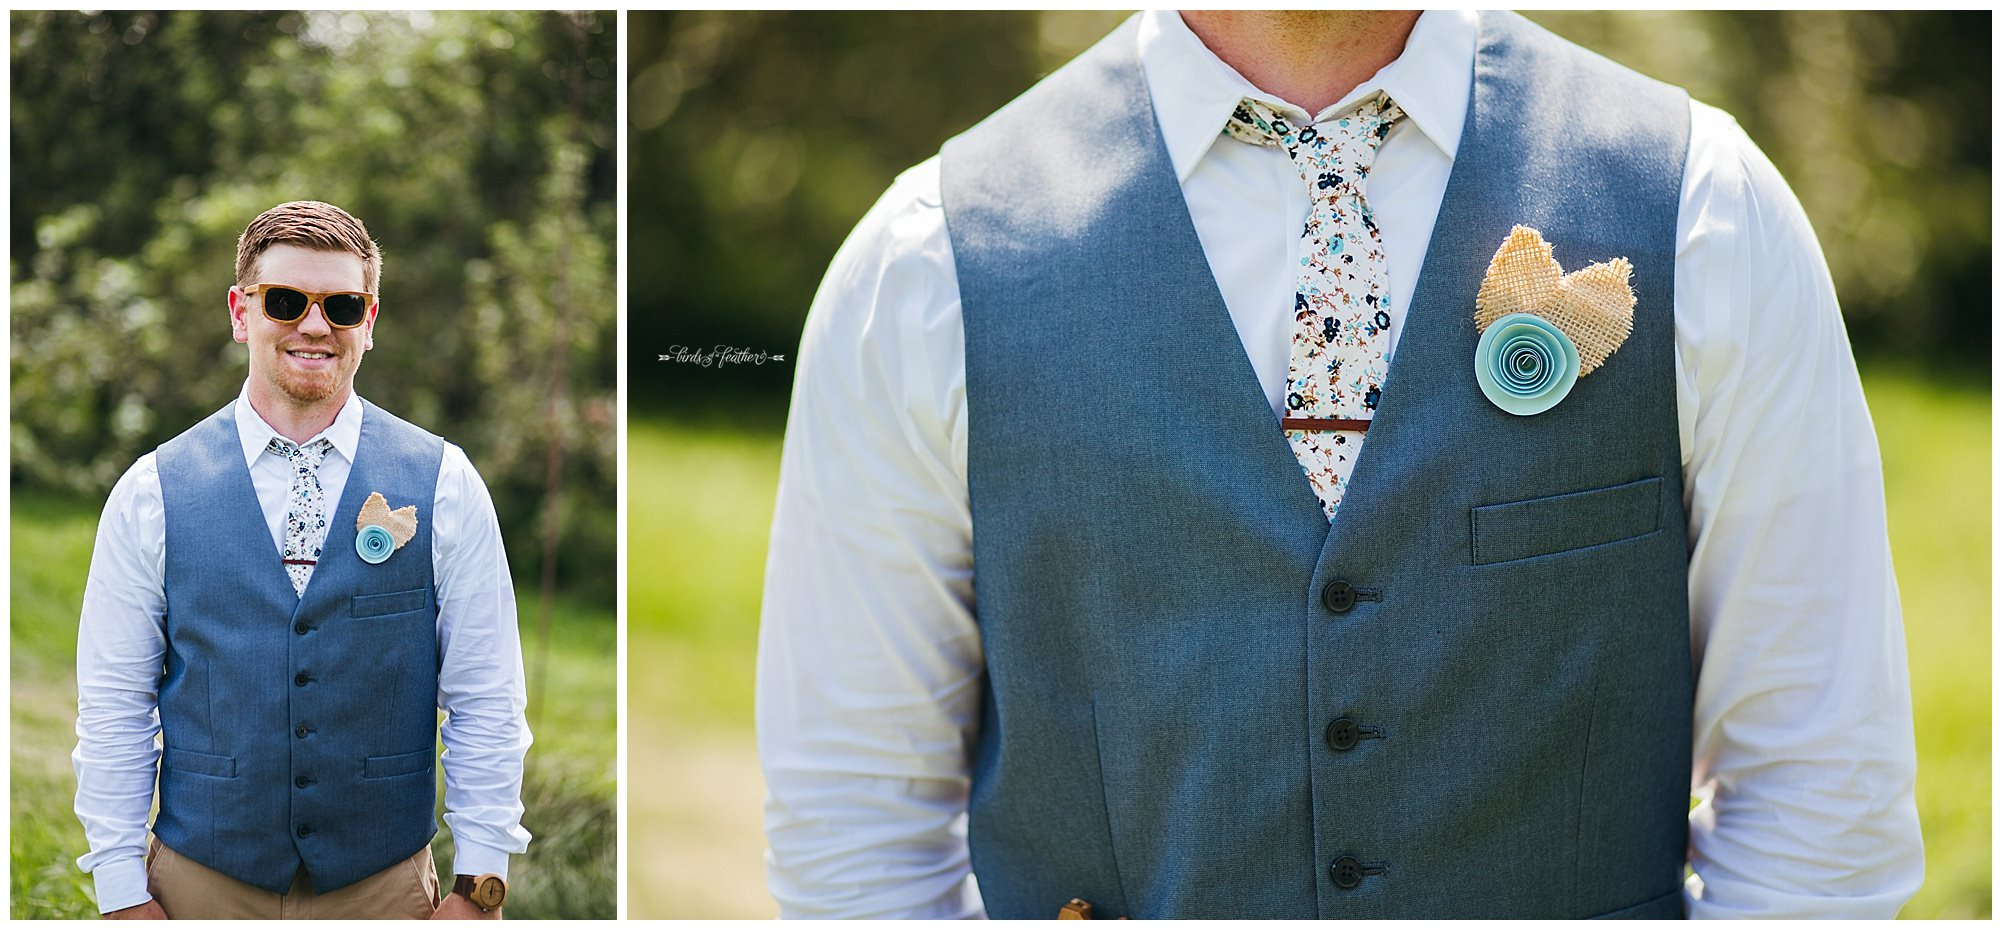 Birds of a Feather Photography Rodale Institute Kutztown Pa Wedding Photographer 09